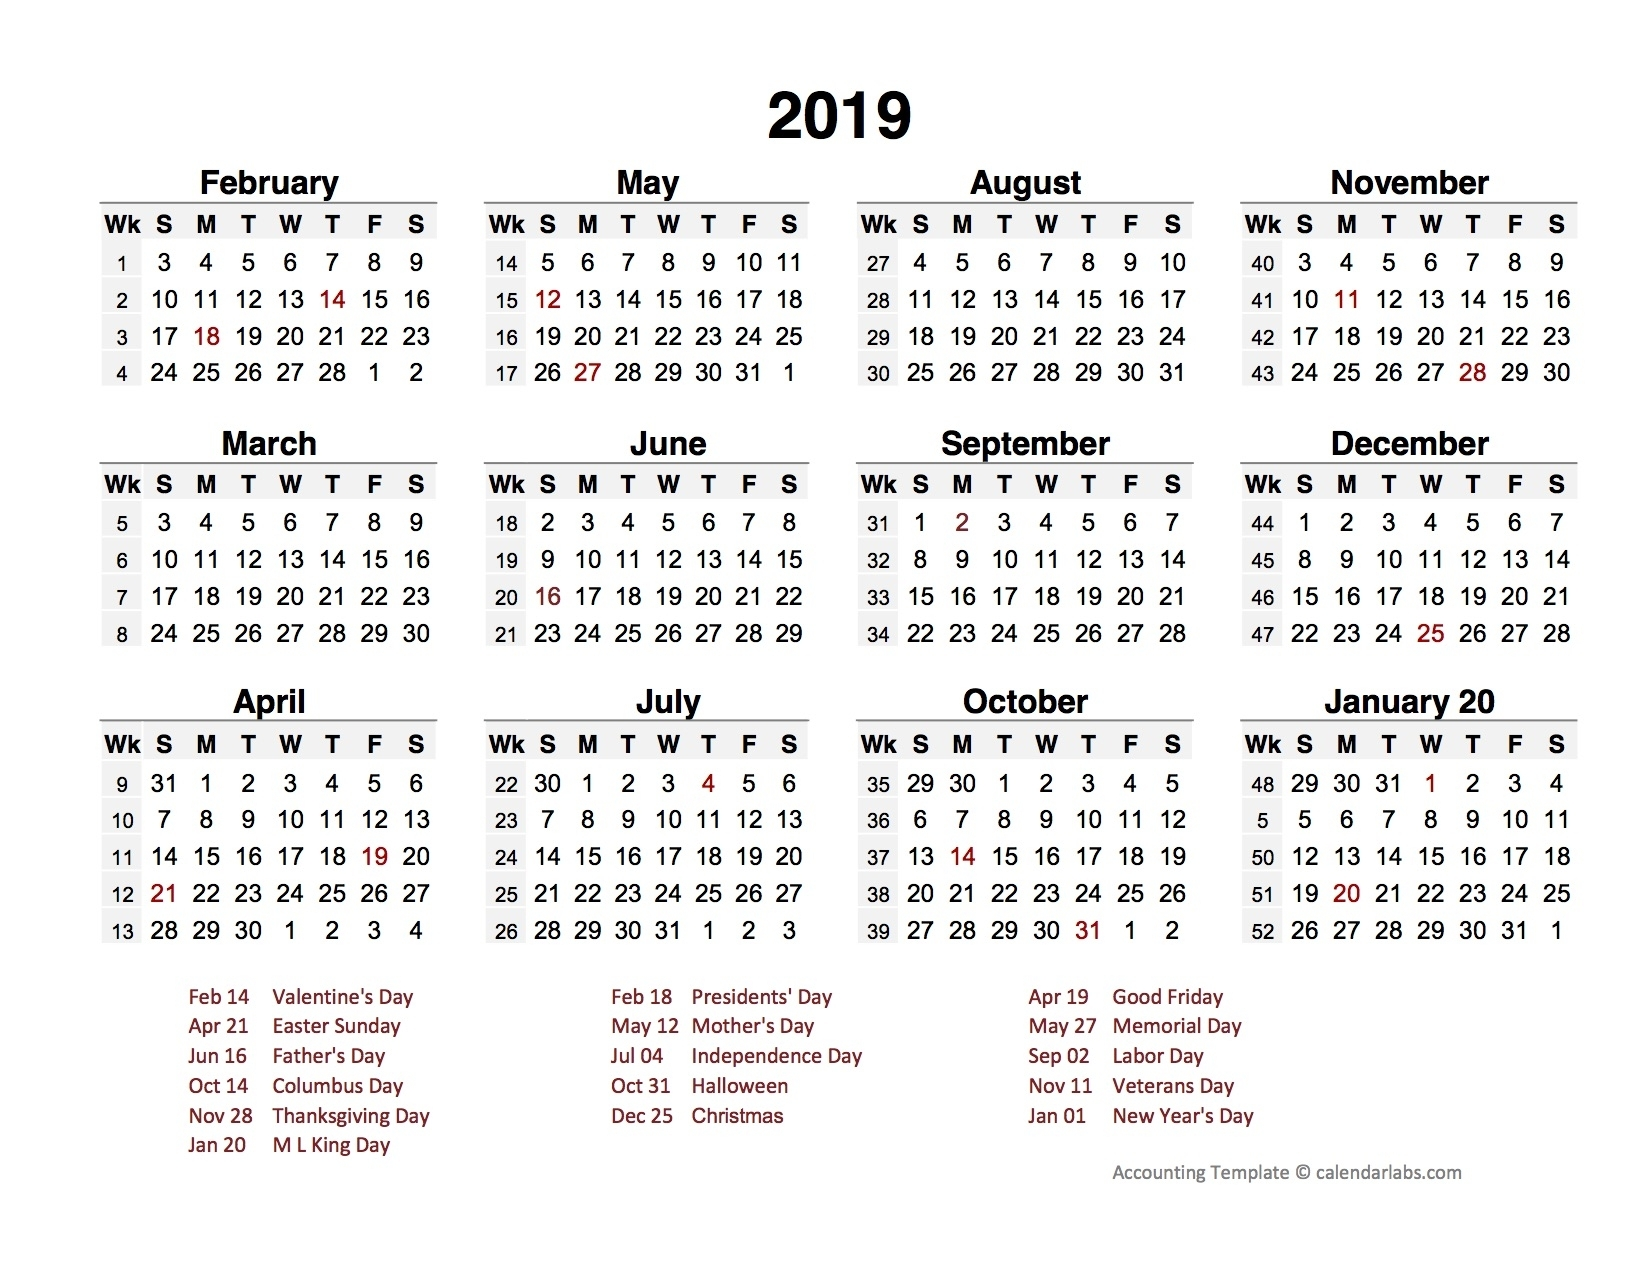 2019 Accounting Period Calendar 4-4-5 - Free Printable